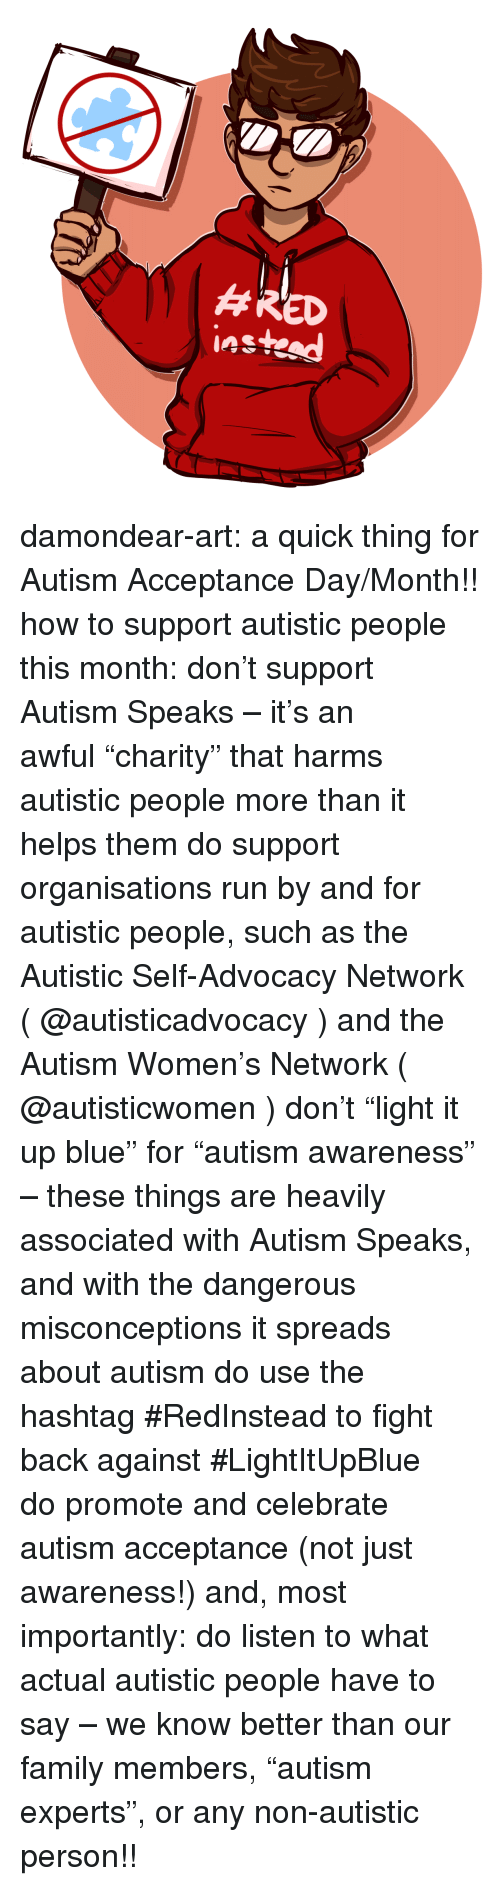 """spreads: damondear-art:  a quick thing for Autism Acceptance Day/Month!! how to support autistic people this month:  don't support Autism Speaks – it's an awful""""charity"""" that harms autistic people more than it helps them  do support organisations run by and for autistic people, such as the Autistic Self-Advocacy Network ( @autisticadvocacy ) and the Autism Women's Network ( @autisticwomen )  don't""""light it up blue"""" for""""autism awareness"""" – these things are heavily associated with Autism Speaks, and with the dangerous misconceptions it spreads about autism  do use the hashtag #RedInstead to fight back against #LightItUpBlue  dopromote and celebrate autism acceptance (not just awareness!) and, most importantly:  dolisten to what actual autistic people have to say – we know better than our family members,""""autism experts"""", or any non-autistic person!!"""